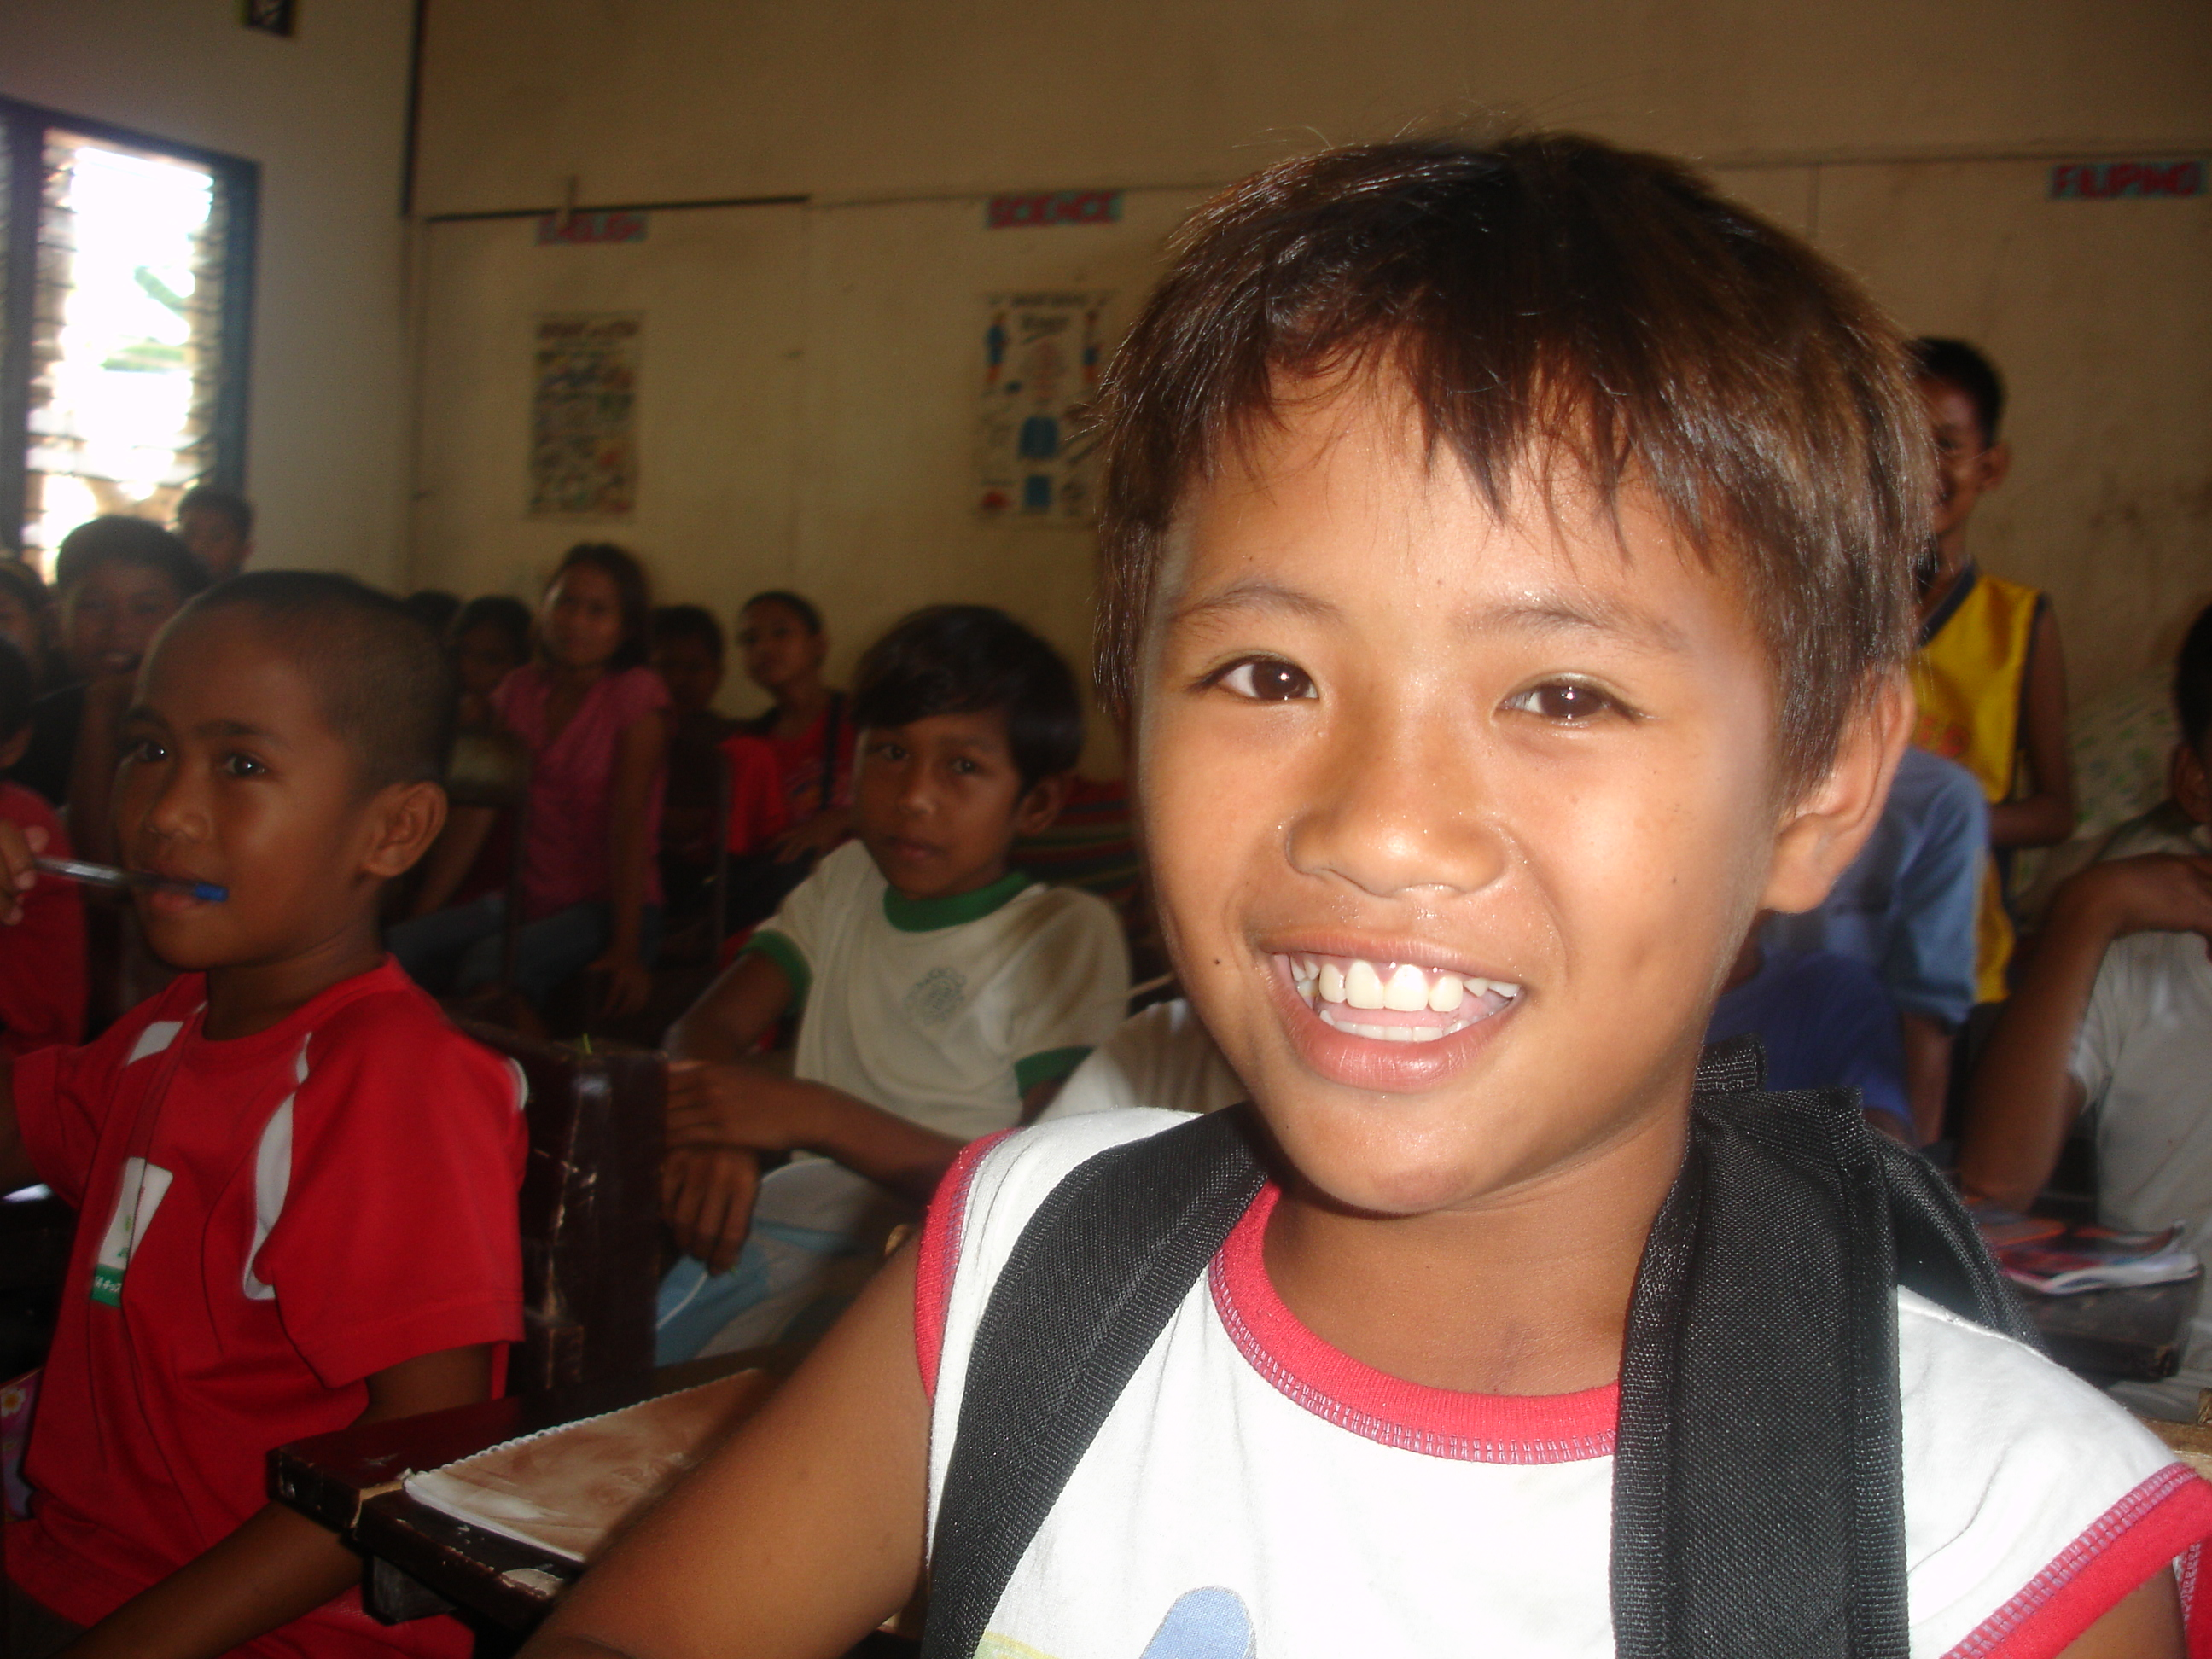 A young schoolboy at the Sambulawan elementary school in Mindanao. Thousands of children are not attending school regularly as a result of the conflict which reignited in August 2008.